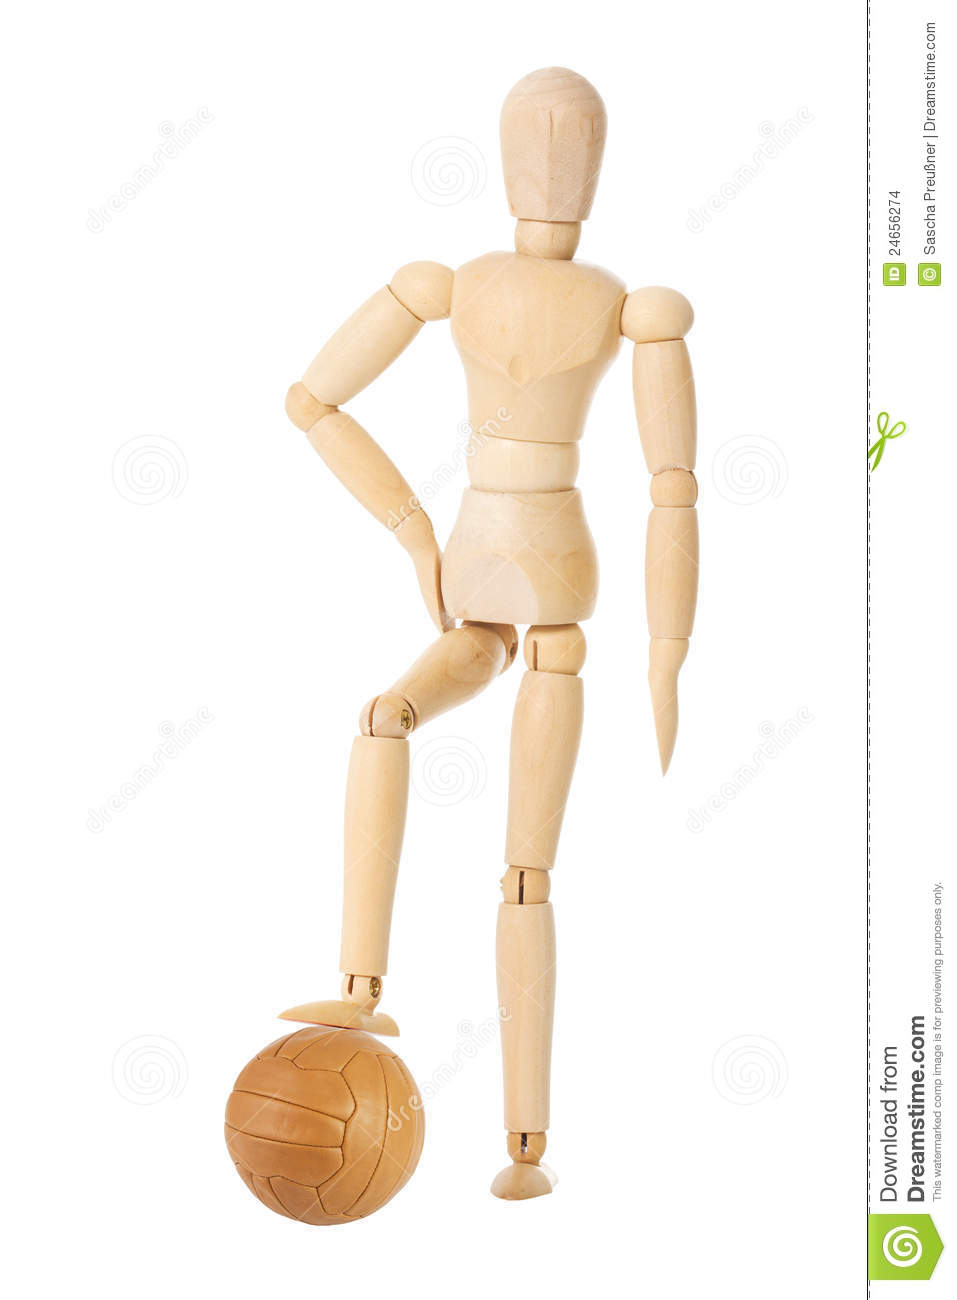 Wooden Doll With Soccer Ball Stock Images - Image: 24656274